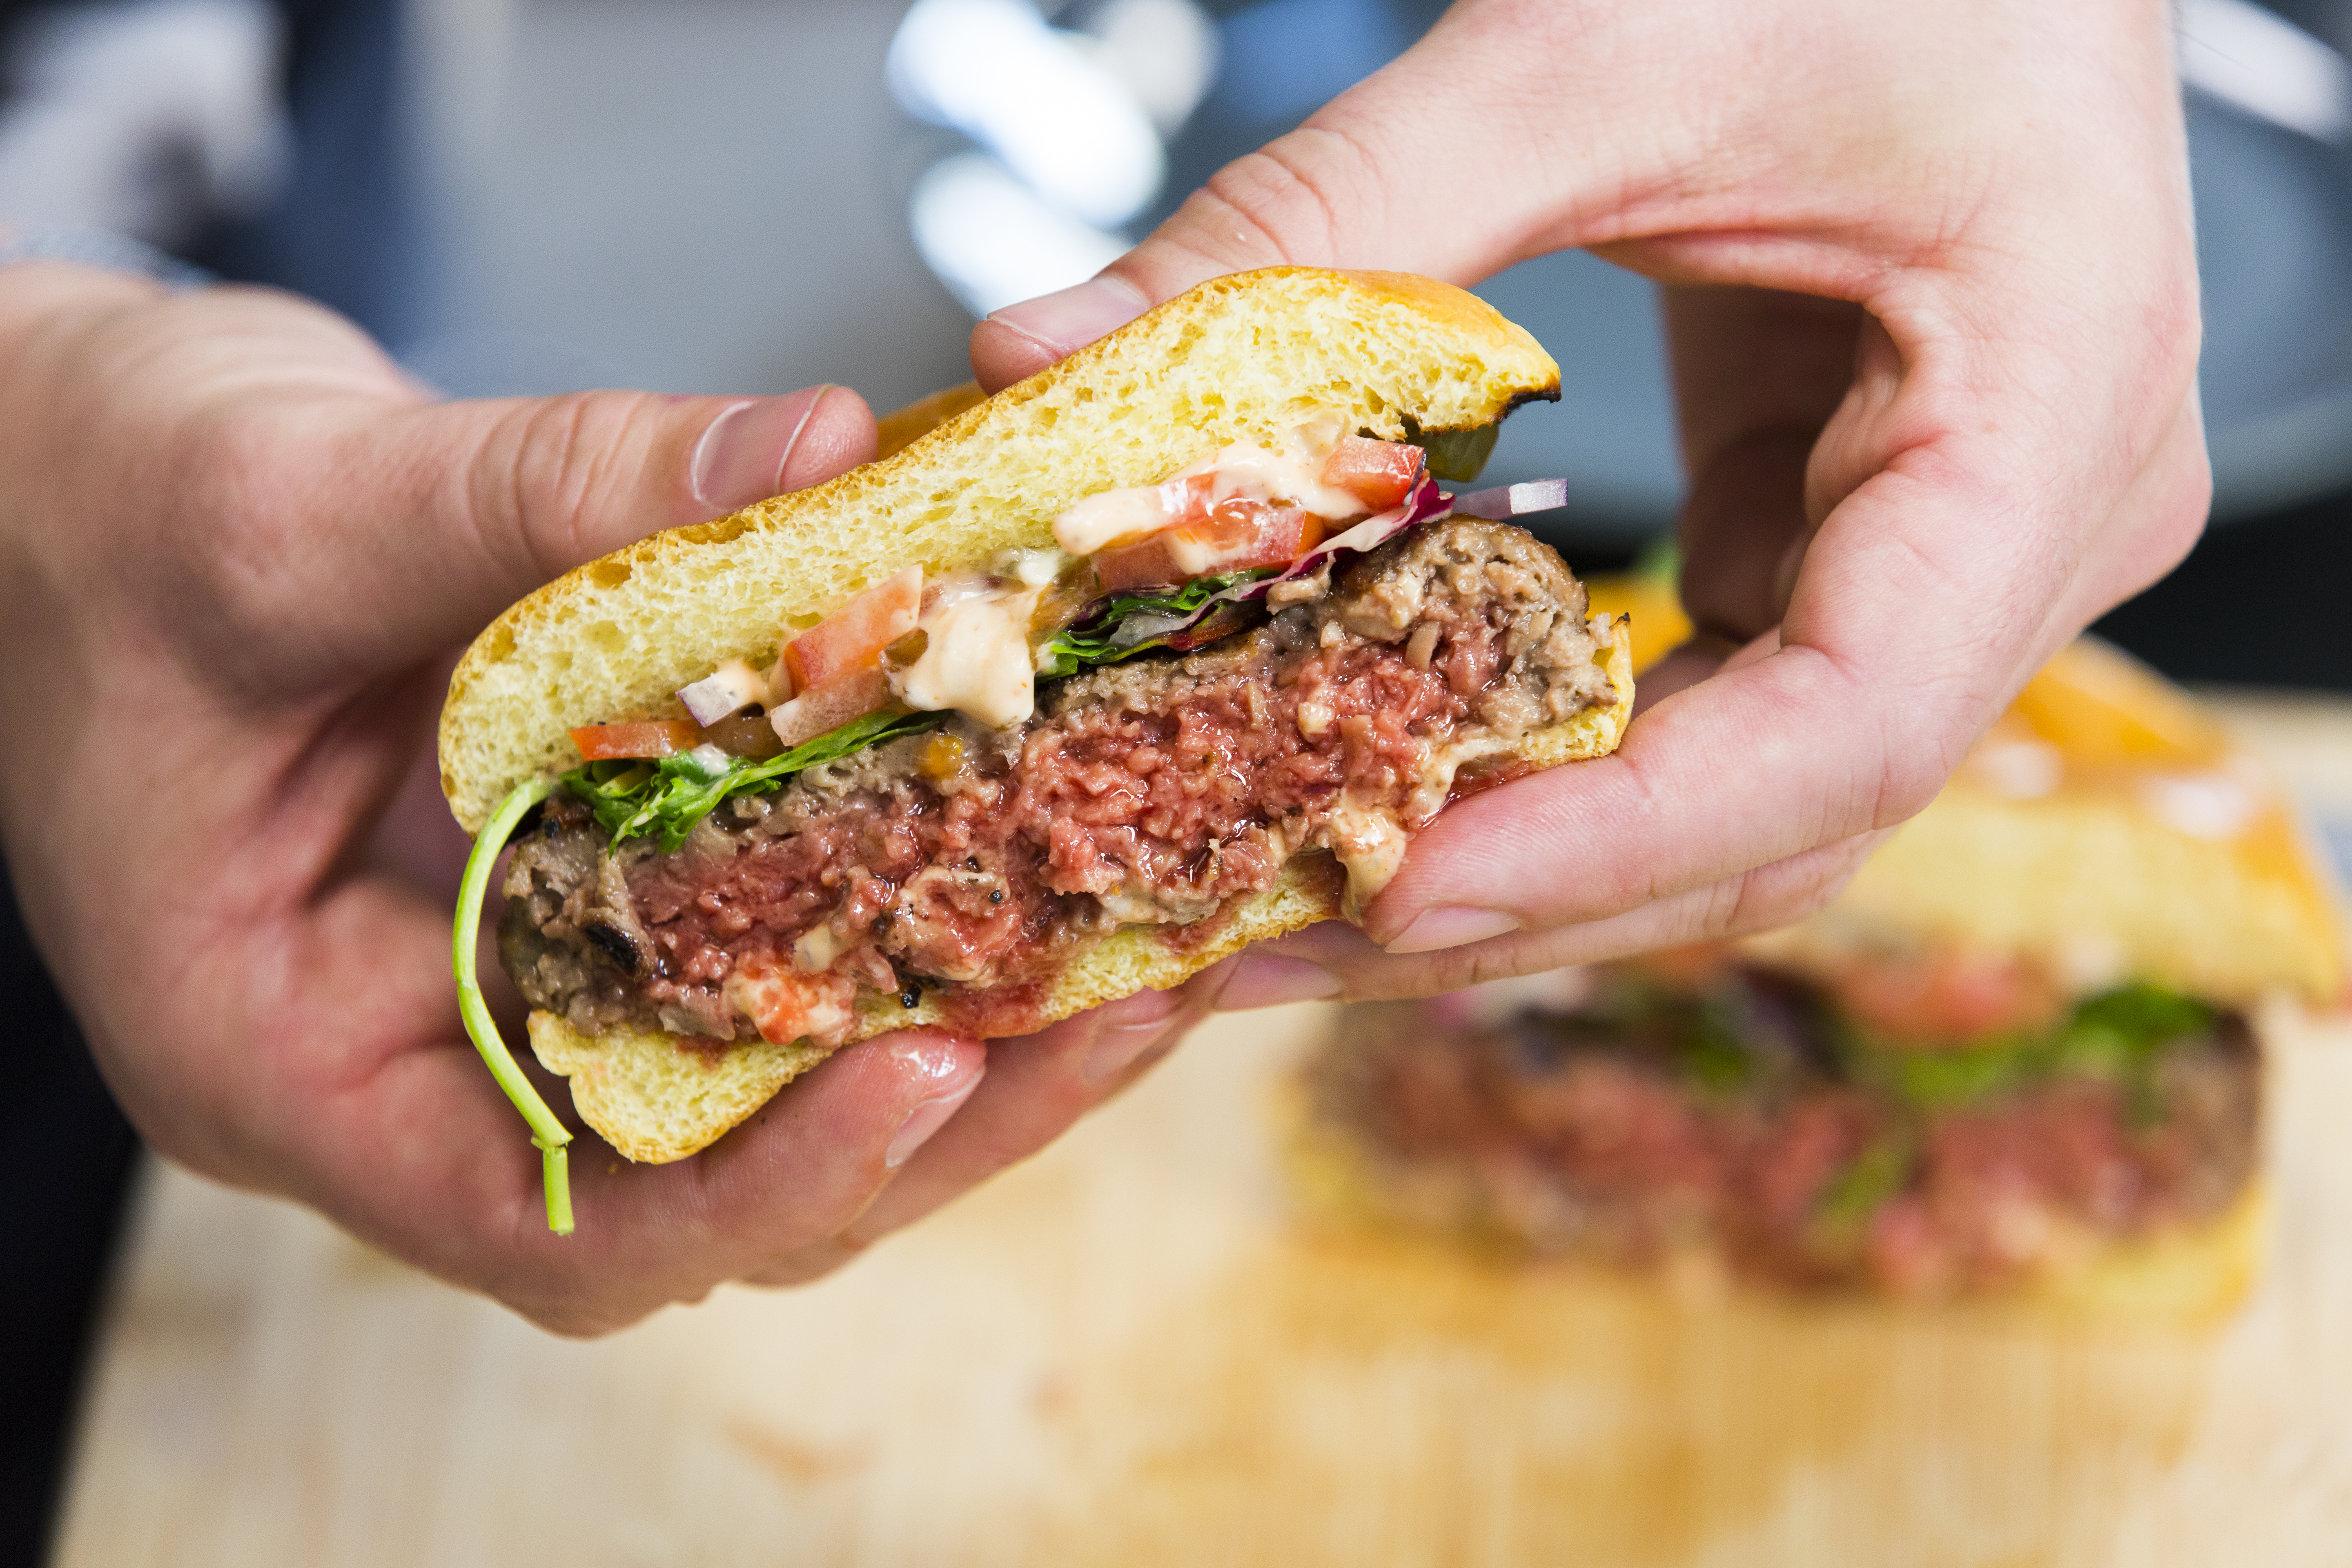 Impossible Foods Sets Its Sights on World Domination, Starting With Asia